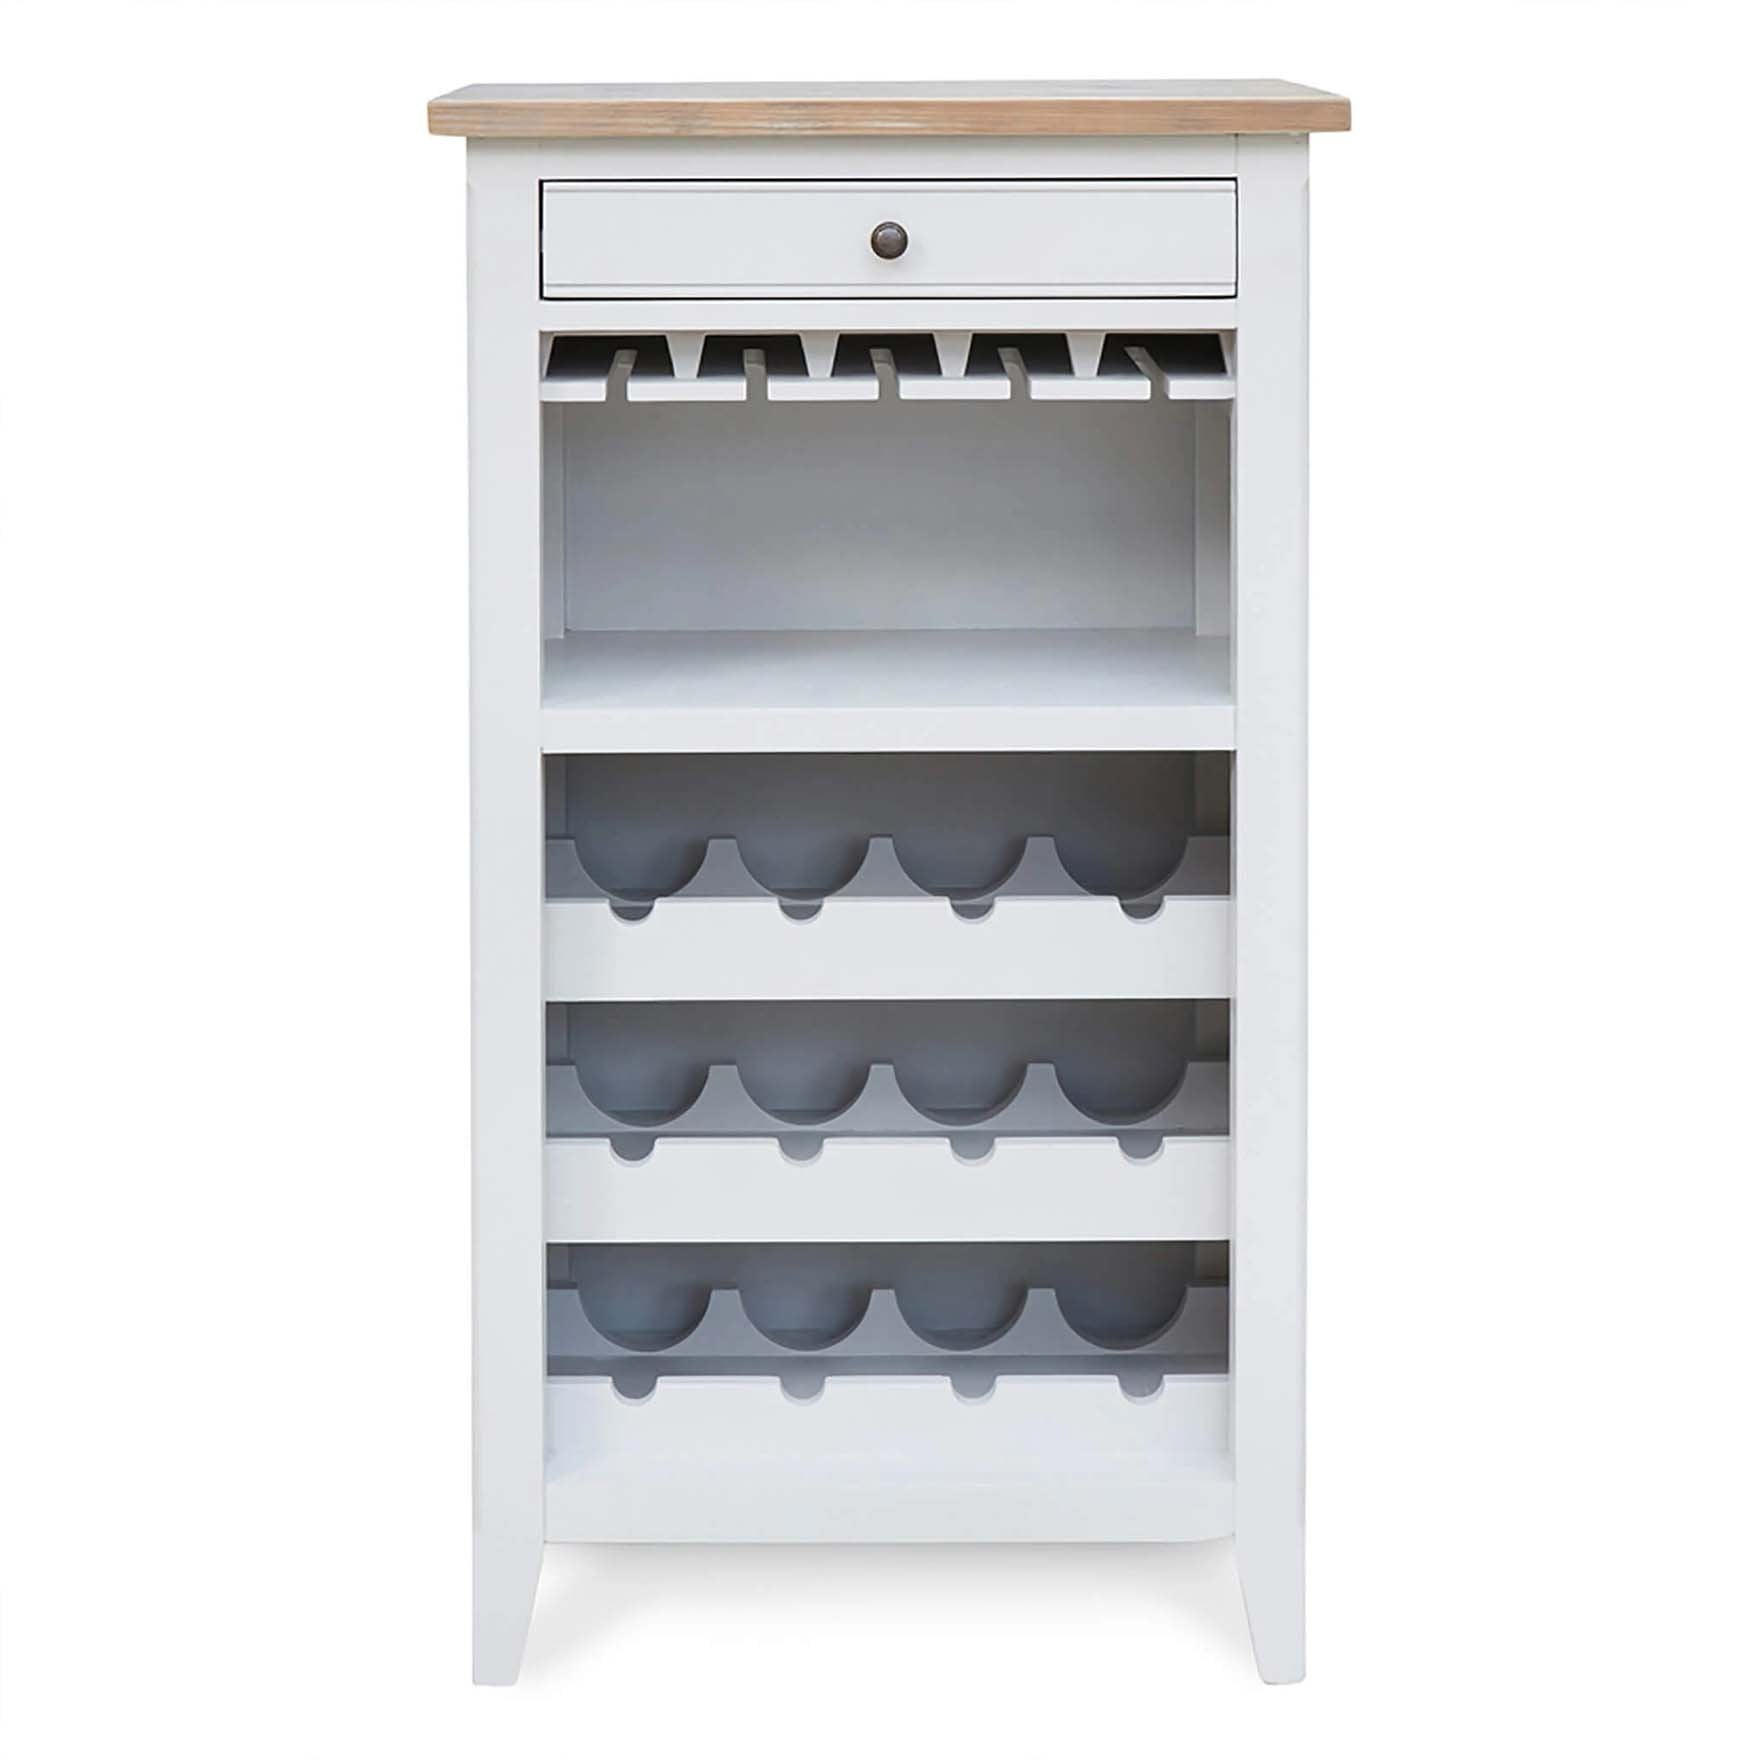 Signature Grey Wine Rack - Glass Storage Cabinet by Roseland Furniture